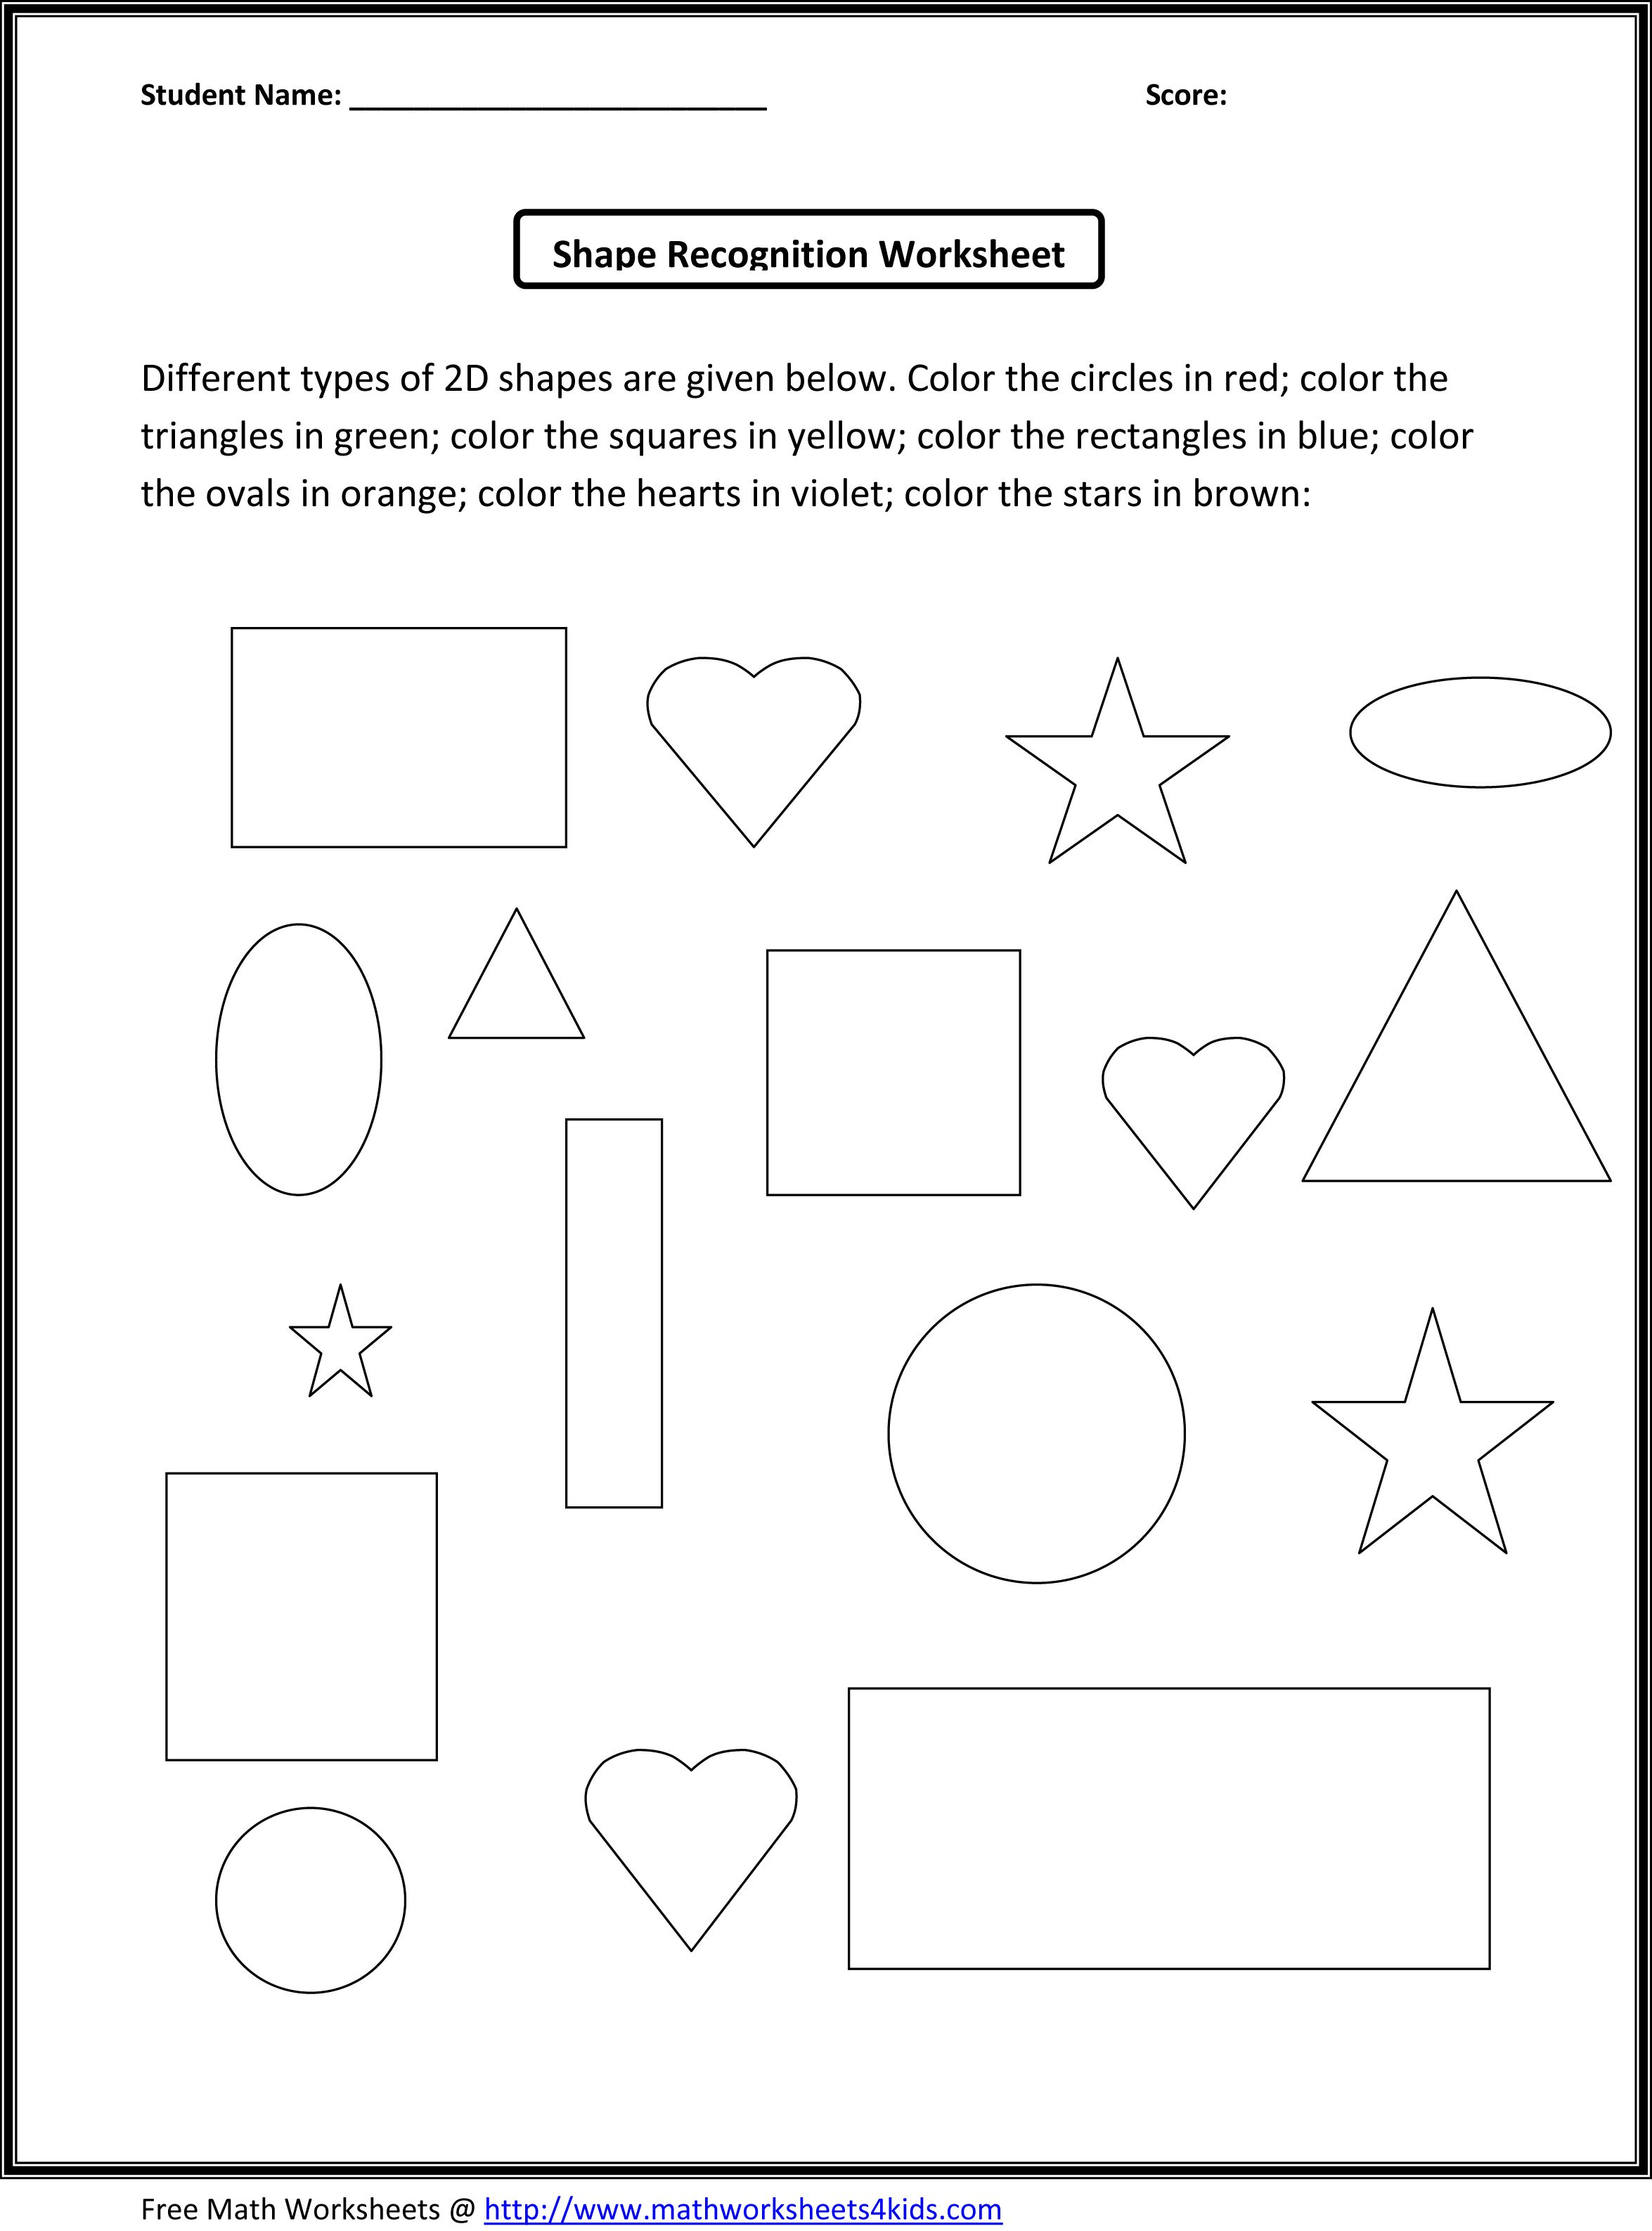 3d Shapes For Kids Worksheets Cakepins